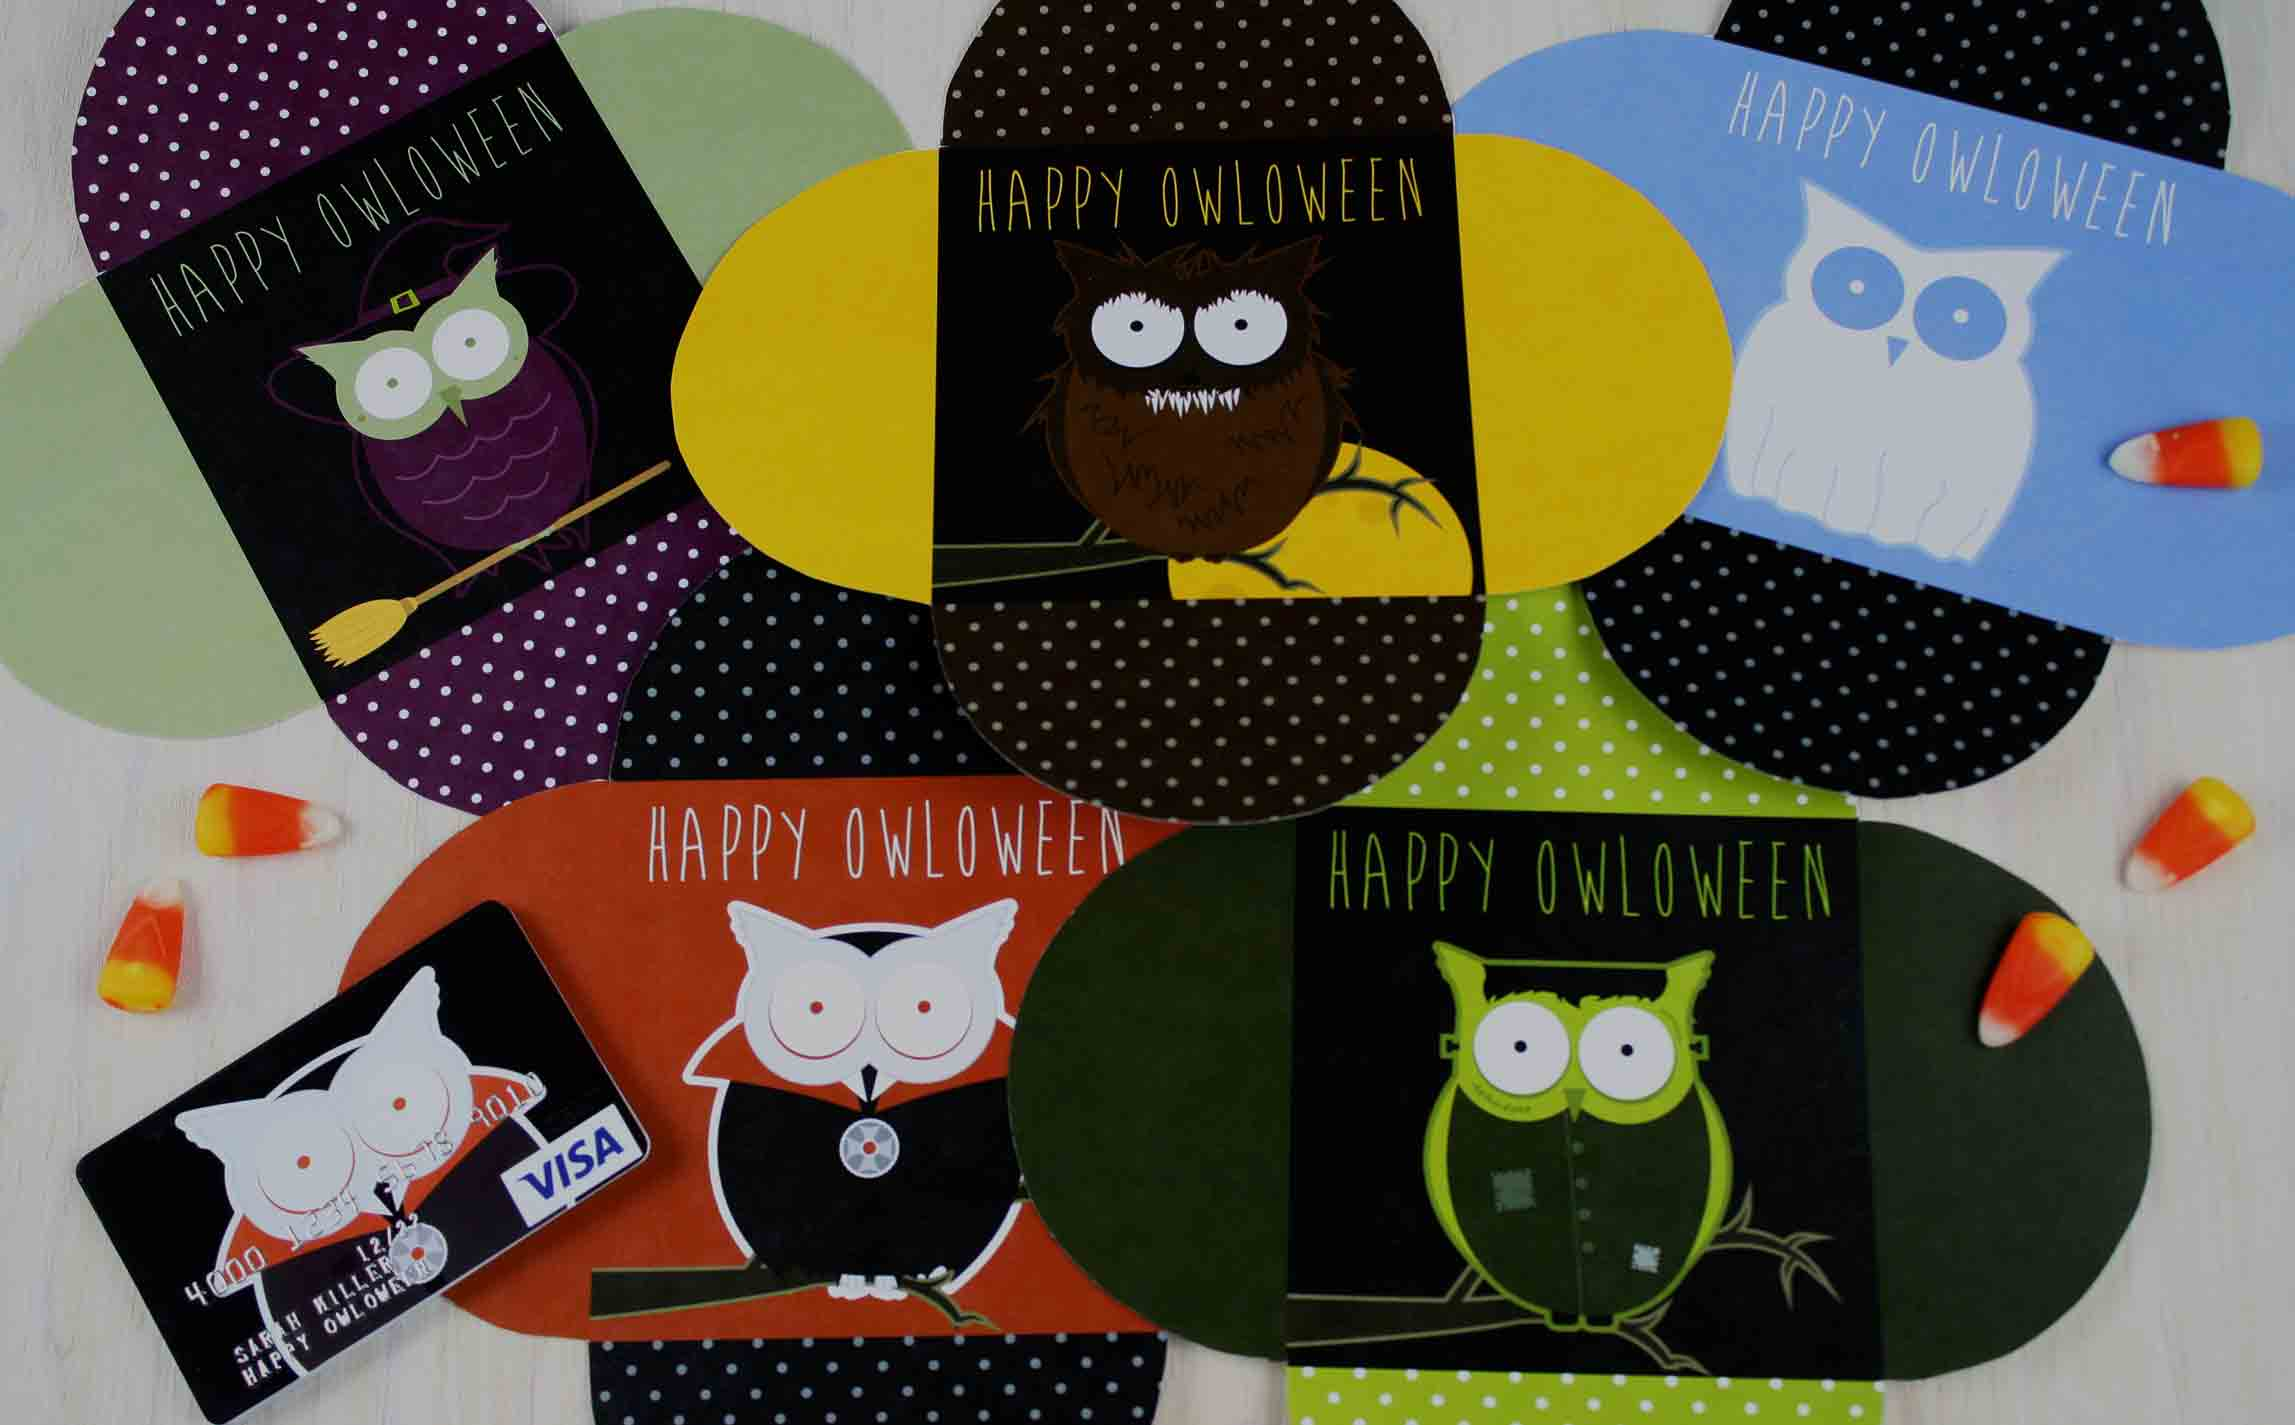 Happy OWLoween cards ready to craft